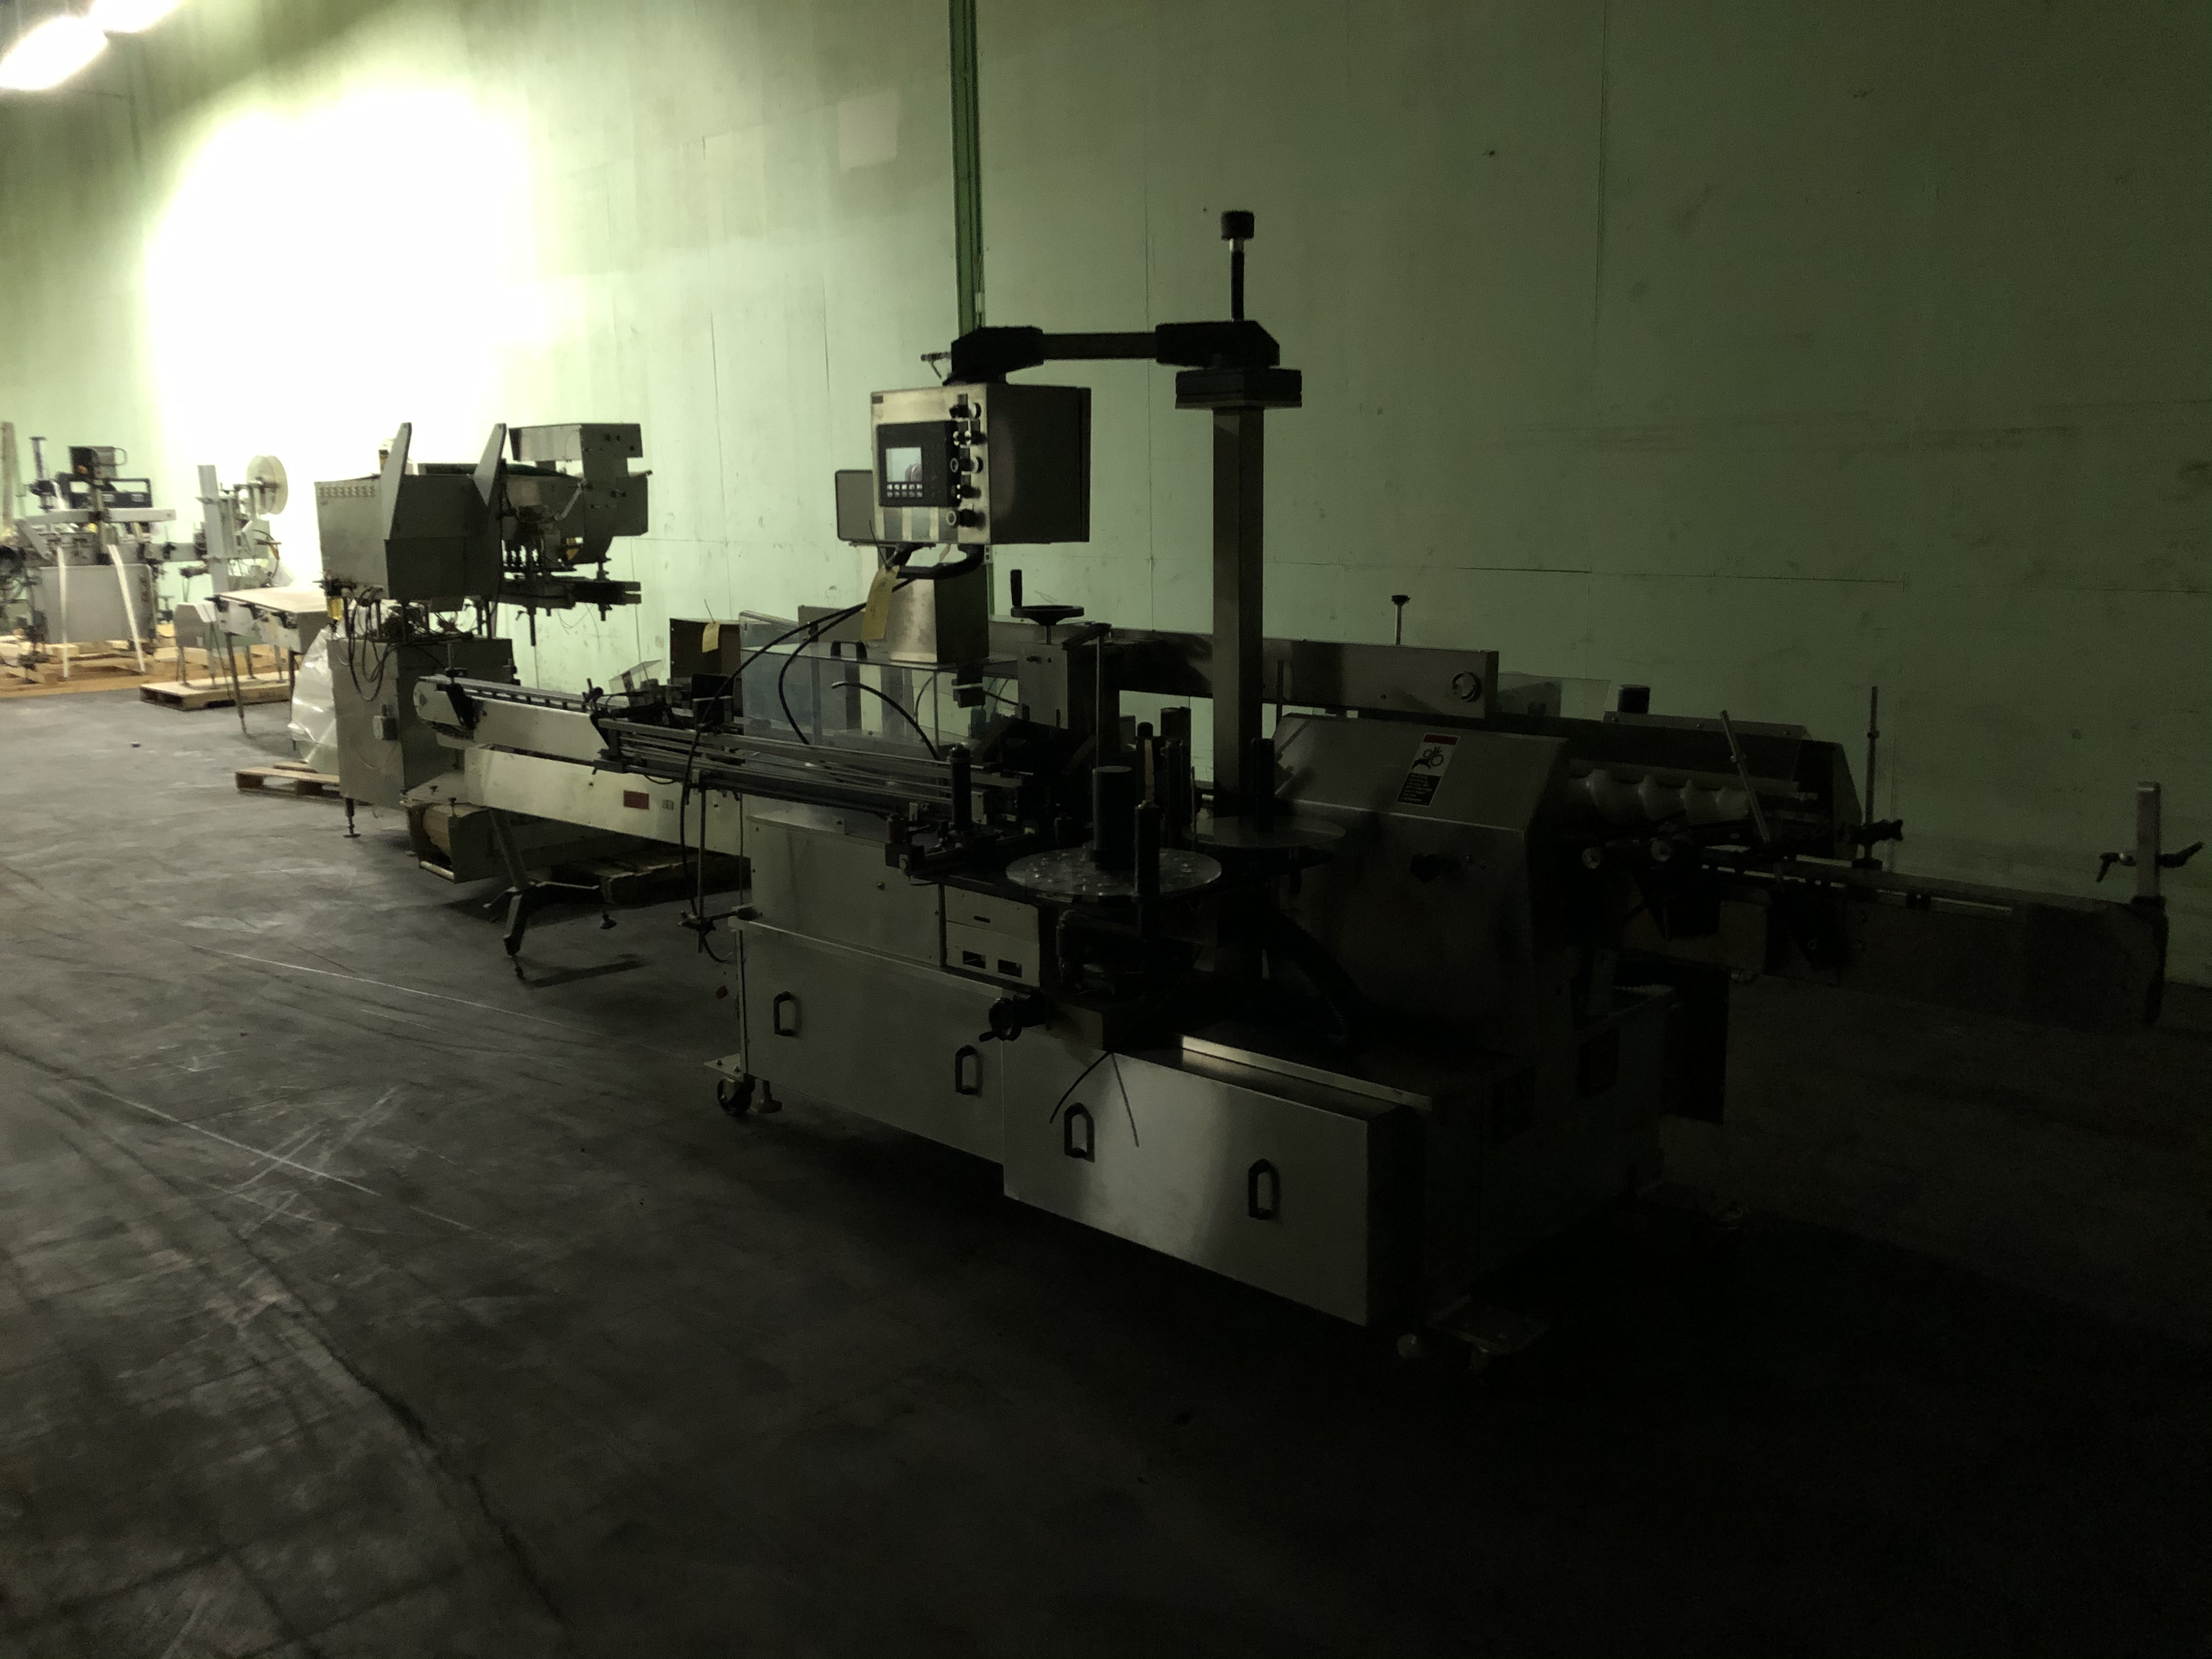 New Jersey Machine Model #34RLDBO-235-M98CO Packaging System, Allen Bradley Panelview 550 Control - Image 2 of 5